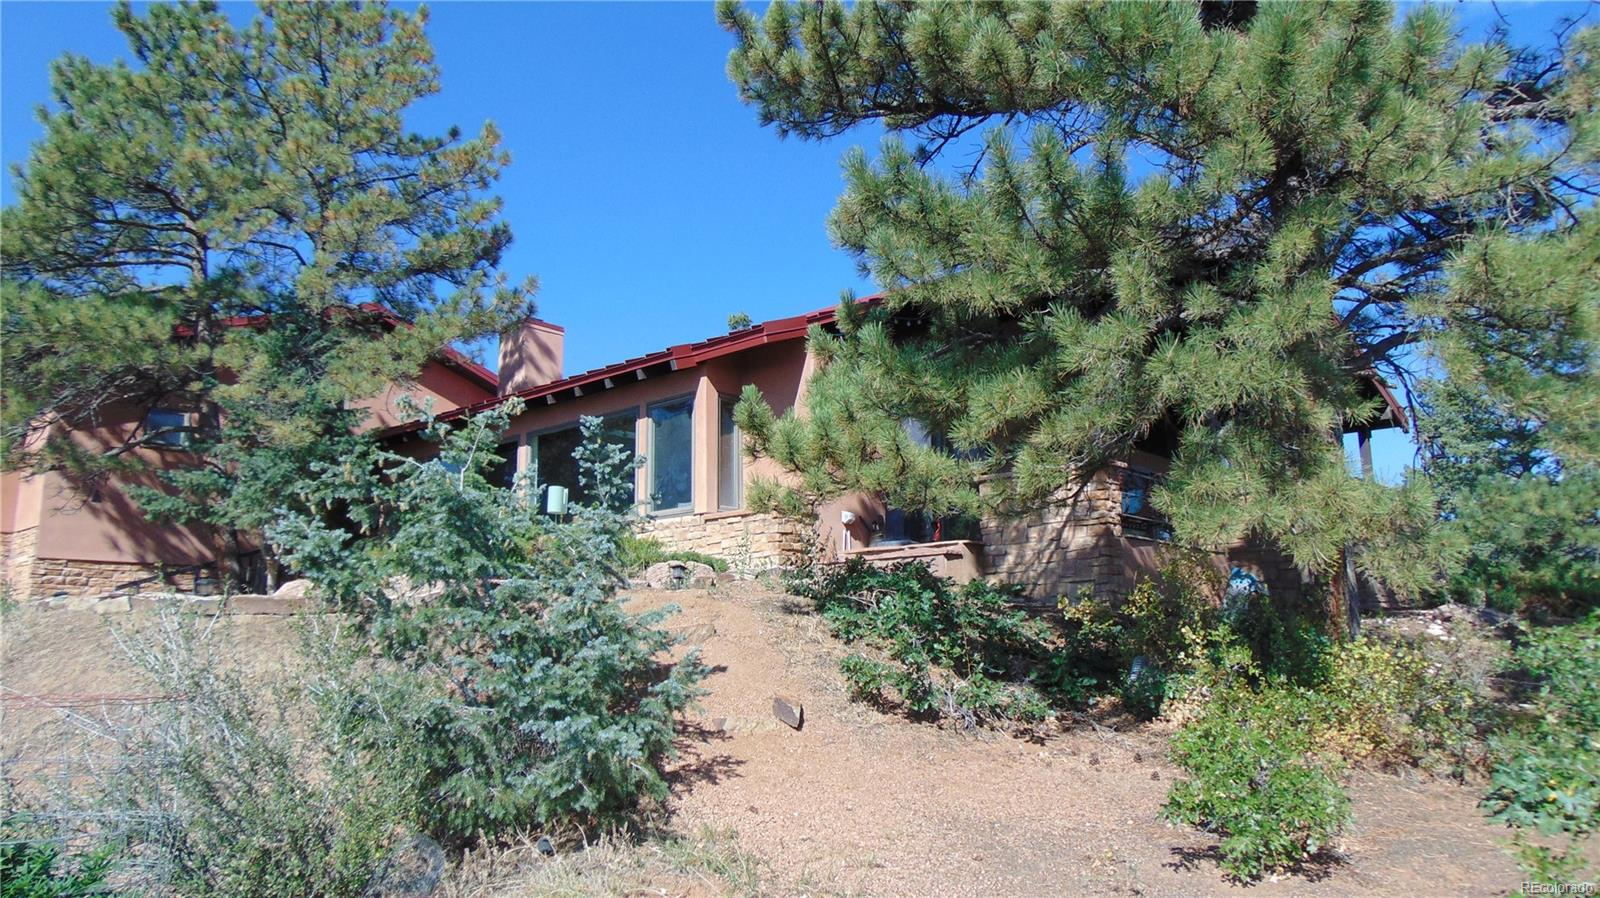 Single Family Home for Active at 52 acre wooded estate off of Jackson Creek Road, with great views of the valley. 7300 Jackson Creek Rd Sedalia, Colorado 80135 United States